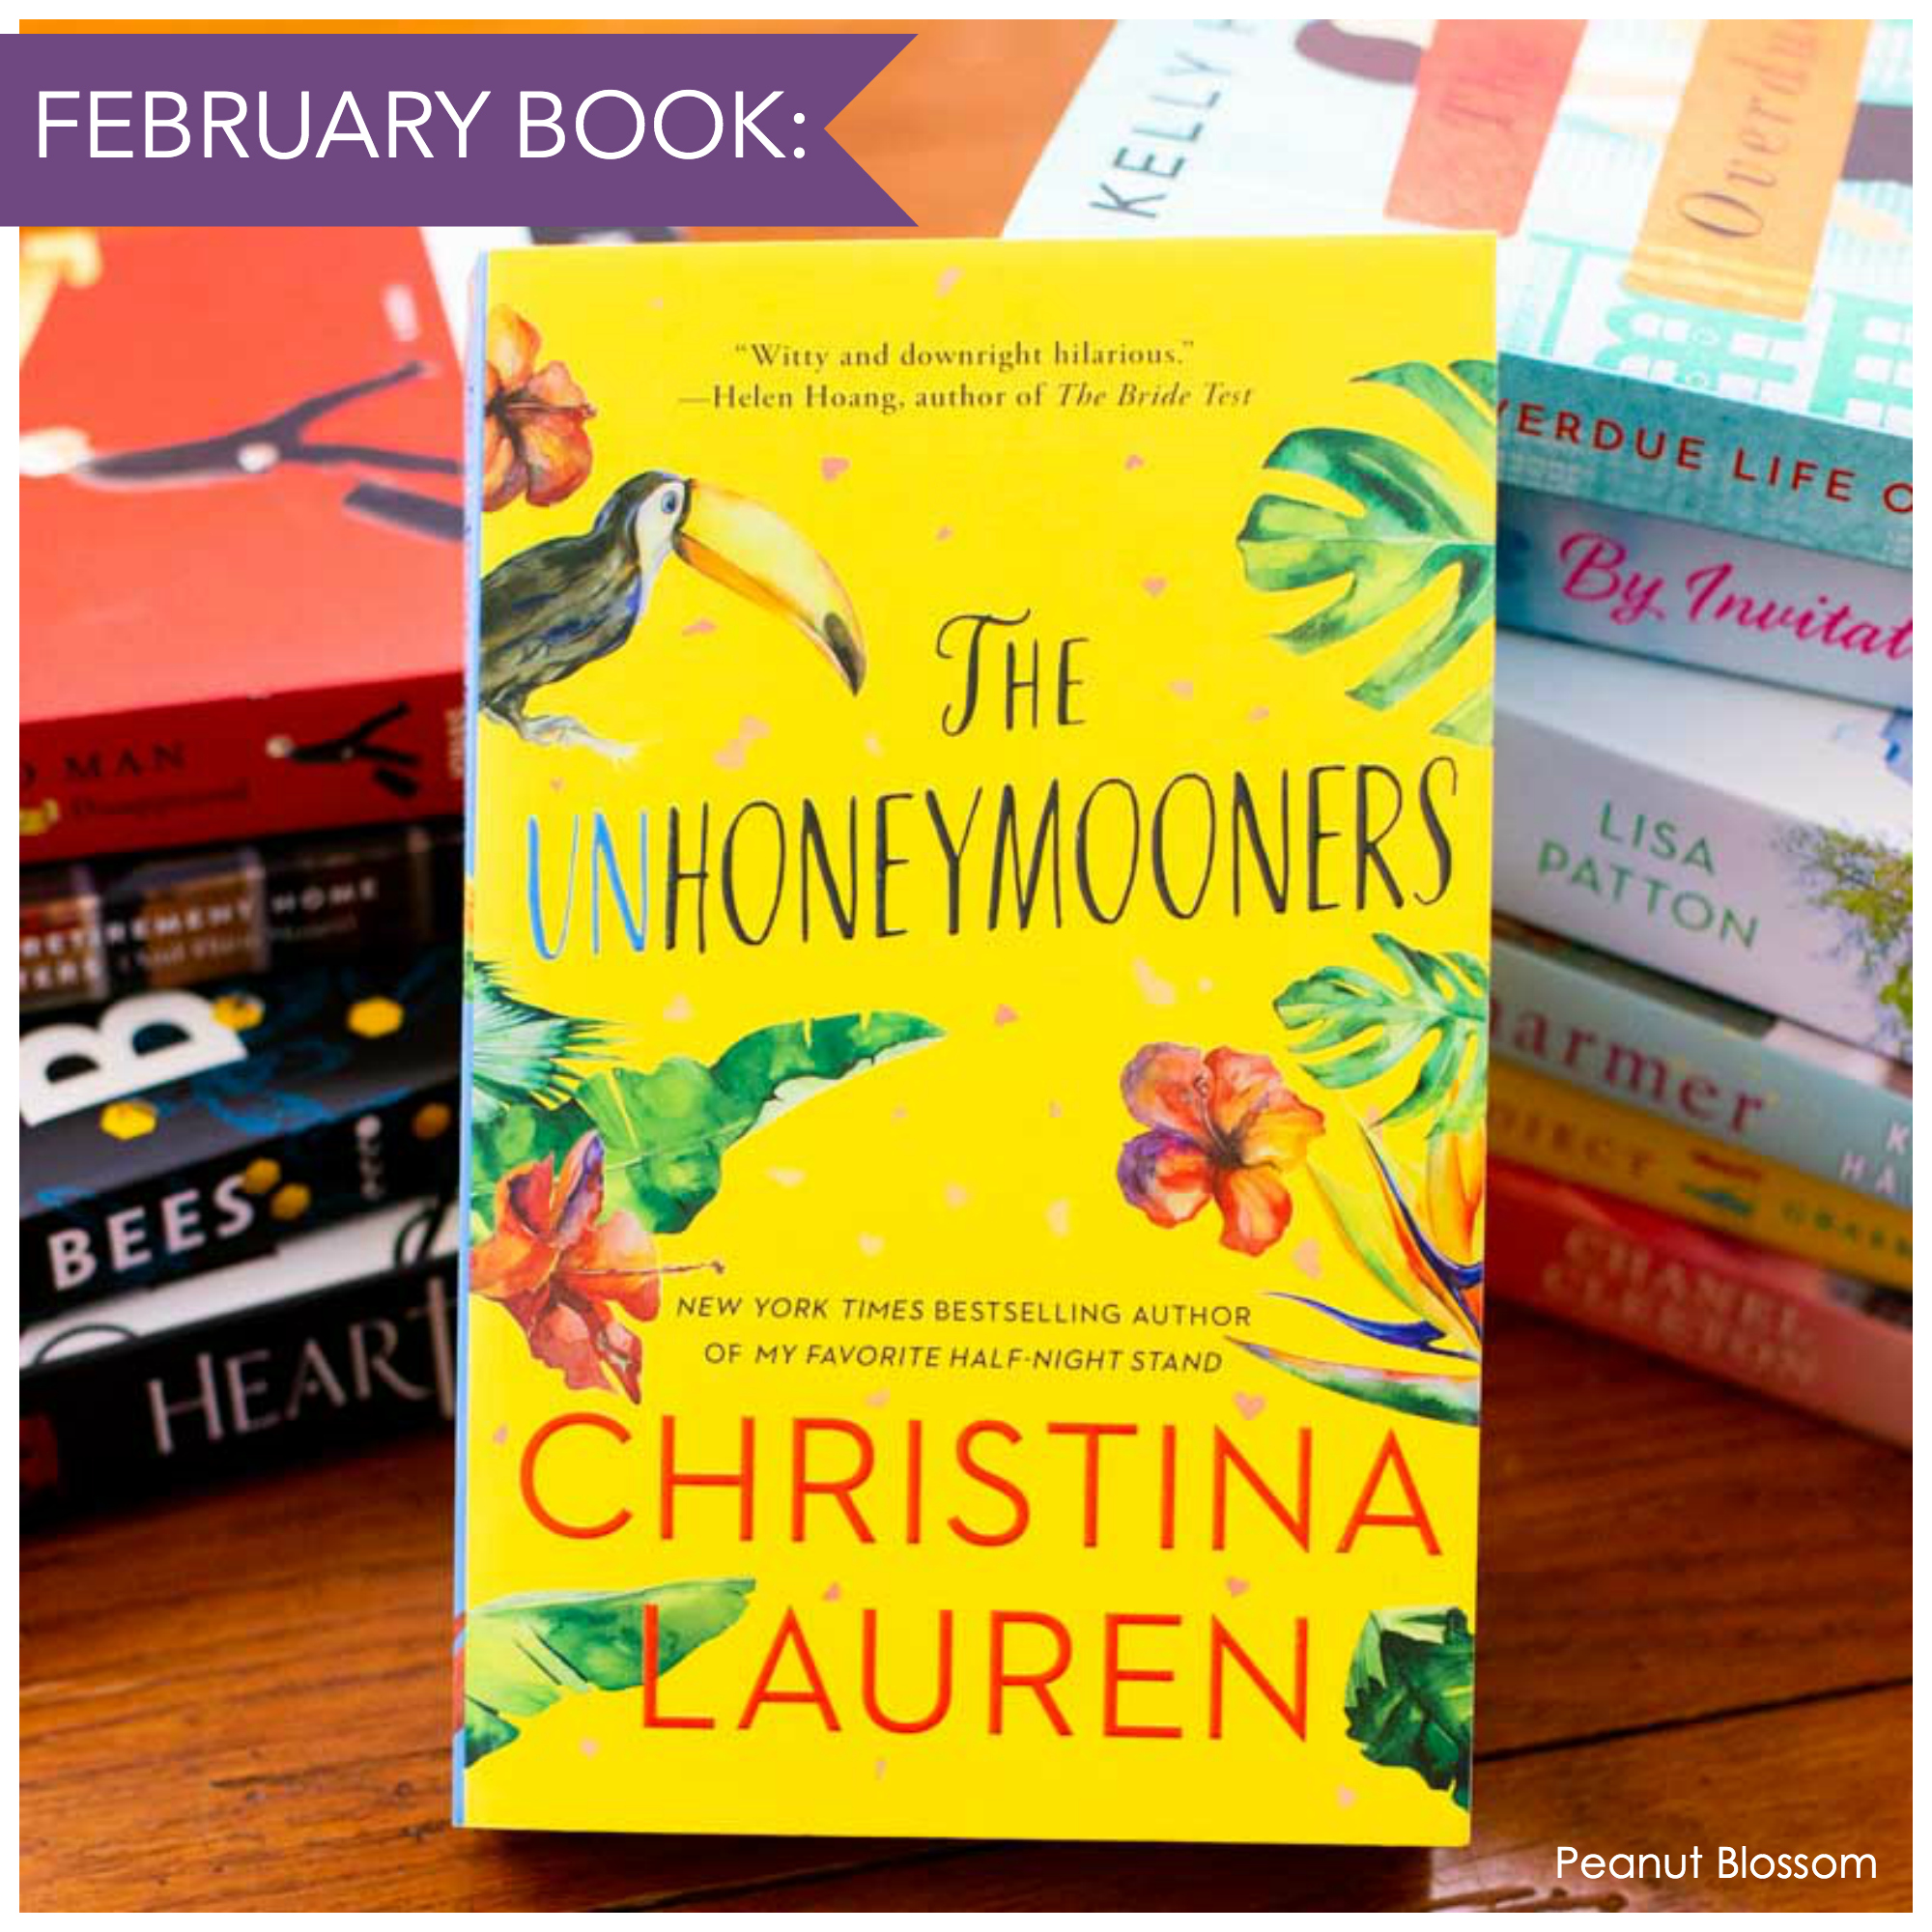 The cover of The Unhoneymooners by Christina Lauren